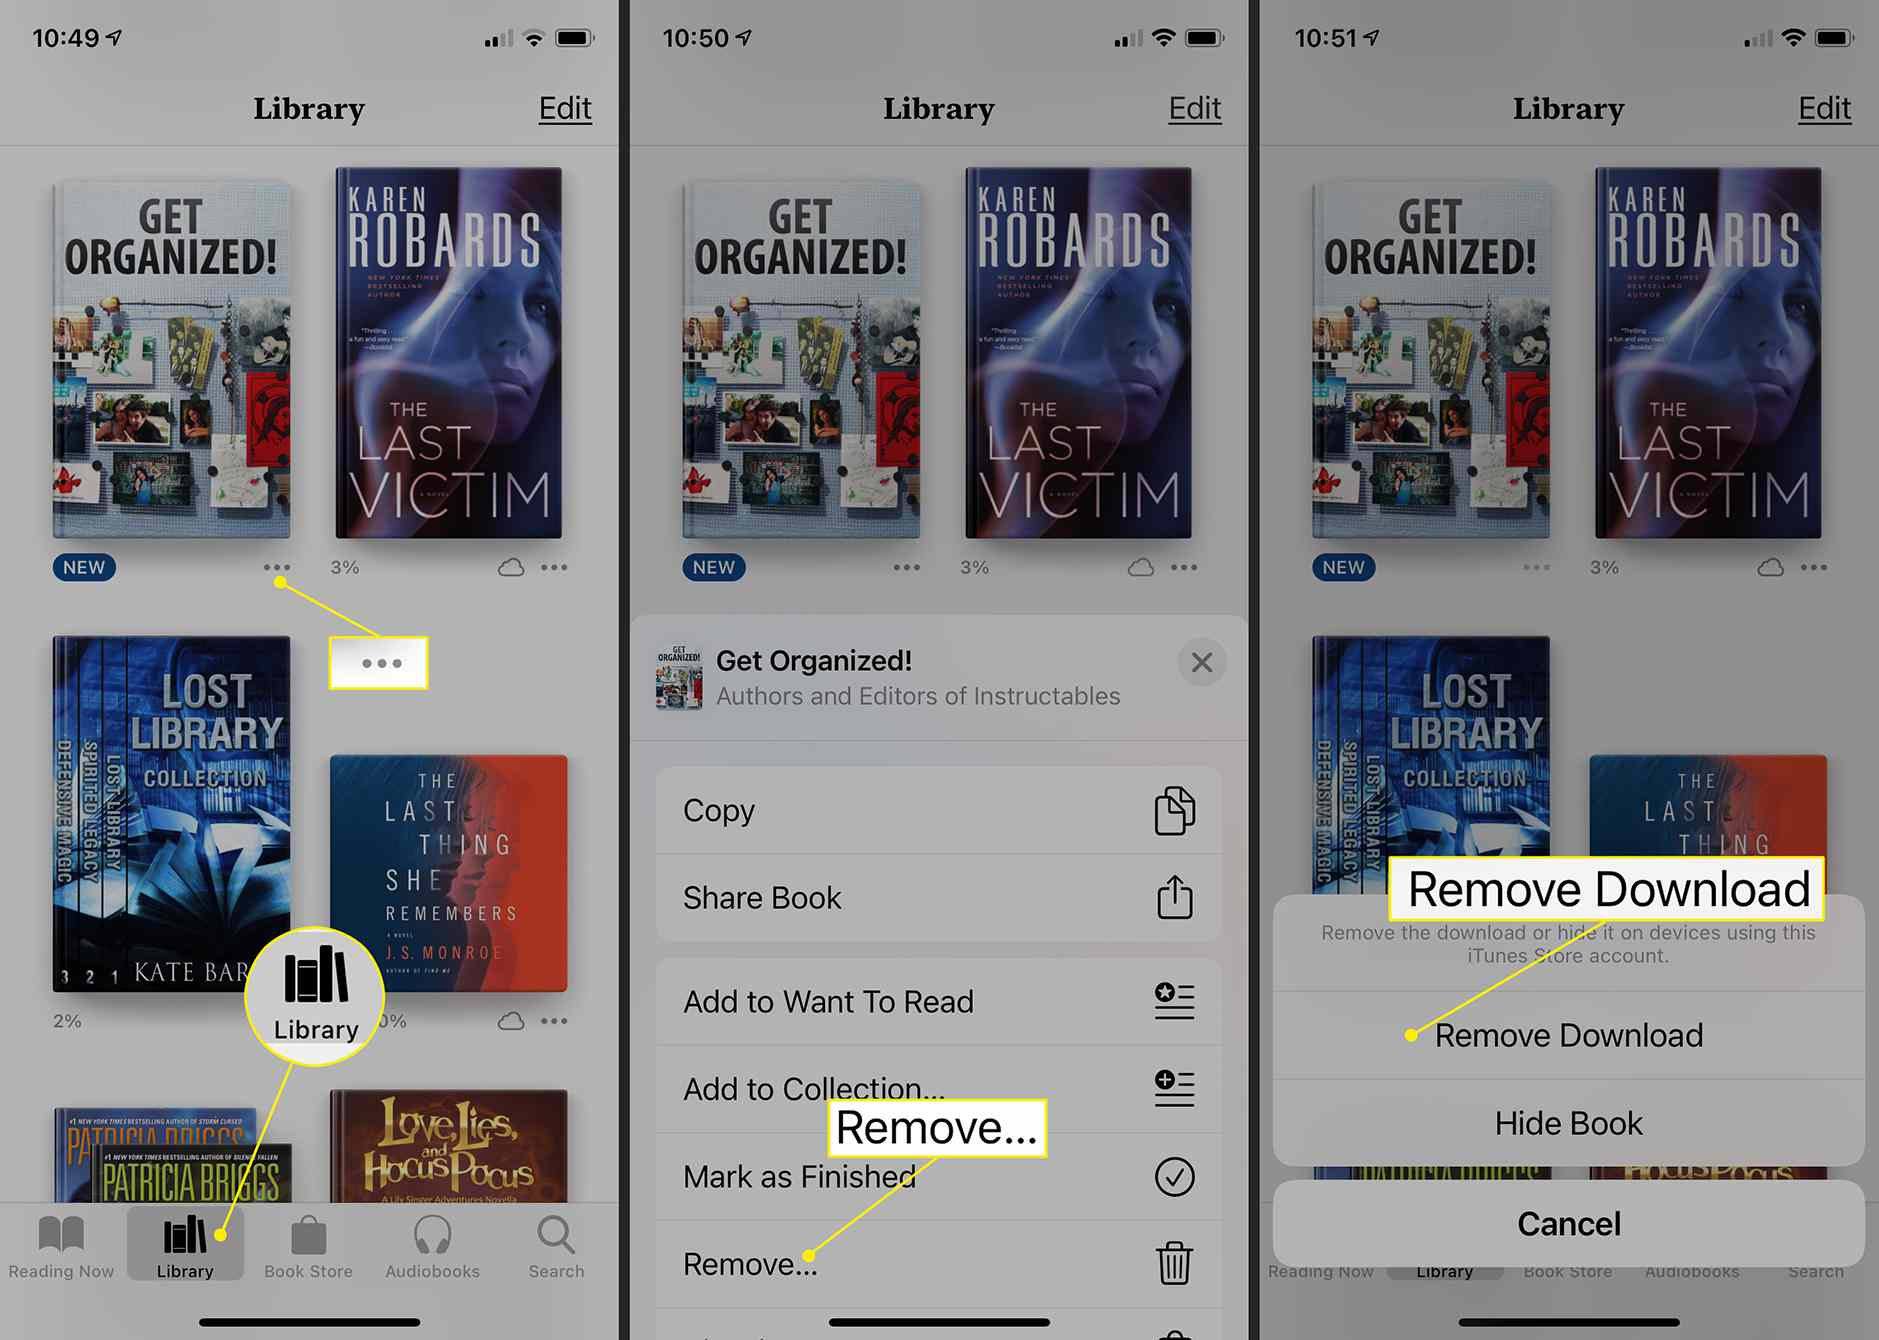 iOS Books app on iPhone showing how to remove a downloaded book